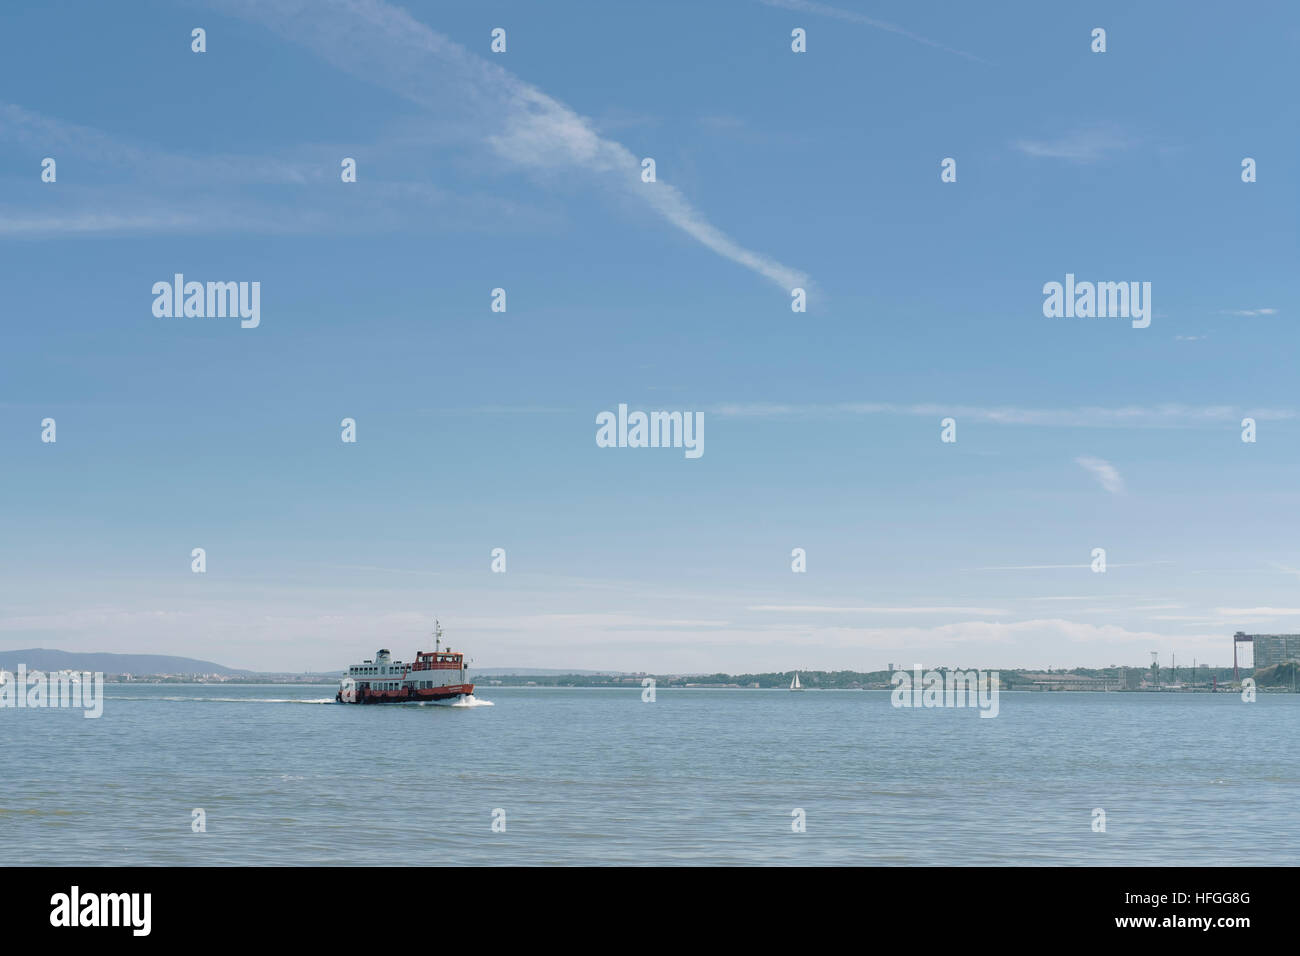 Ferry on the Tage river - Stock Image